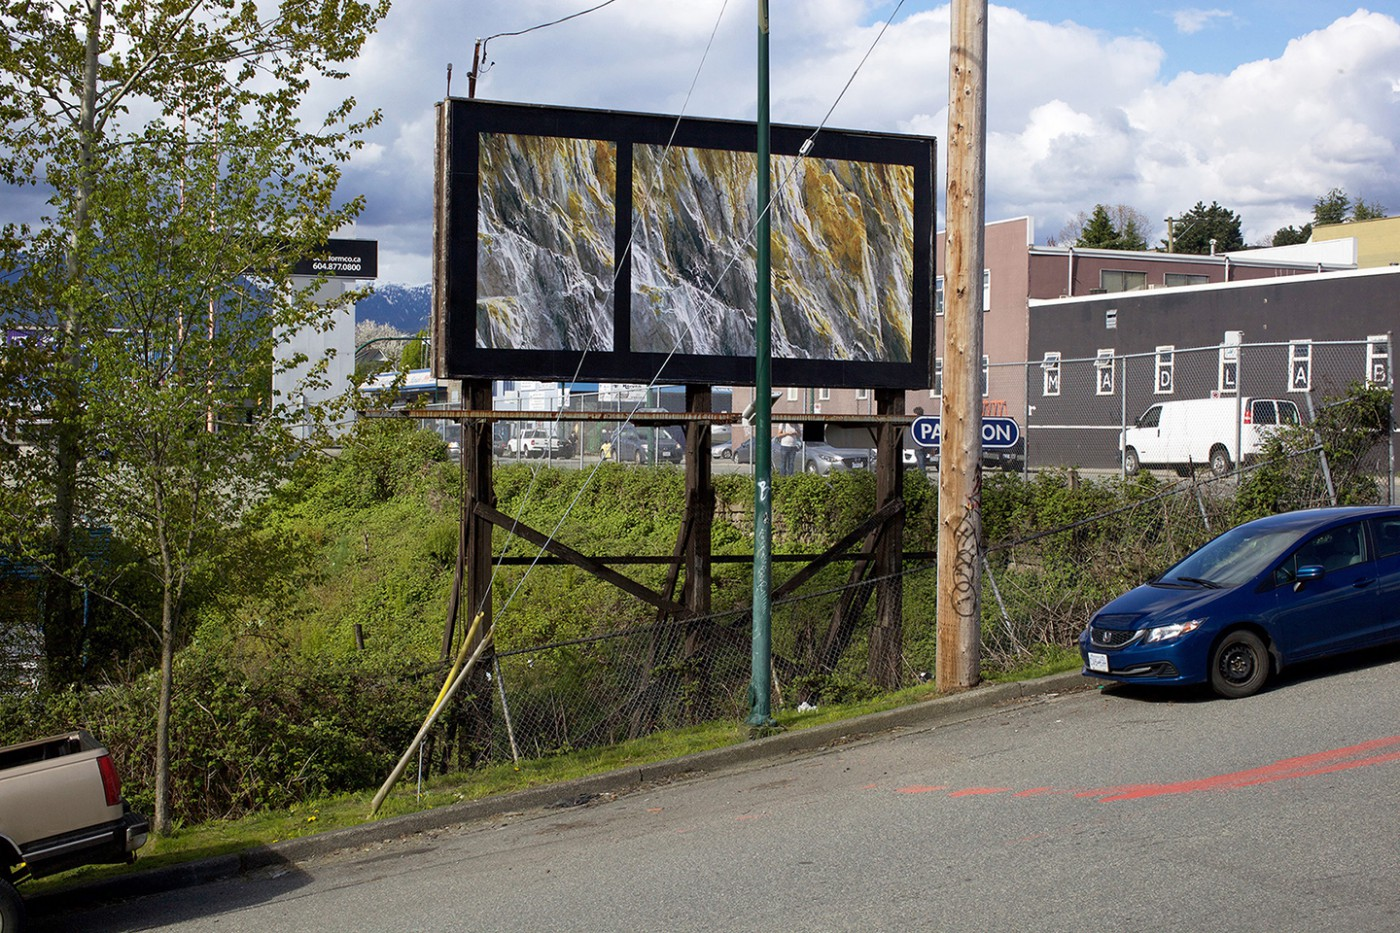 Seth Fluker, </span><span><em>Blueberry Hill</em>, </span><span>installation view of billboards in Vancouver, Clark Dr at East 4 Ave &amp; East 2 Ave. 2017.